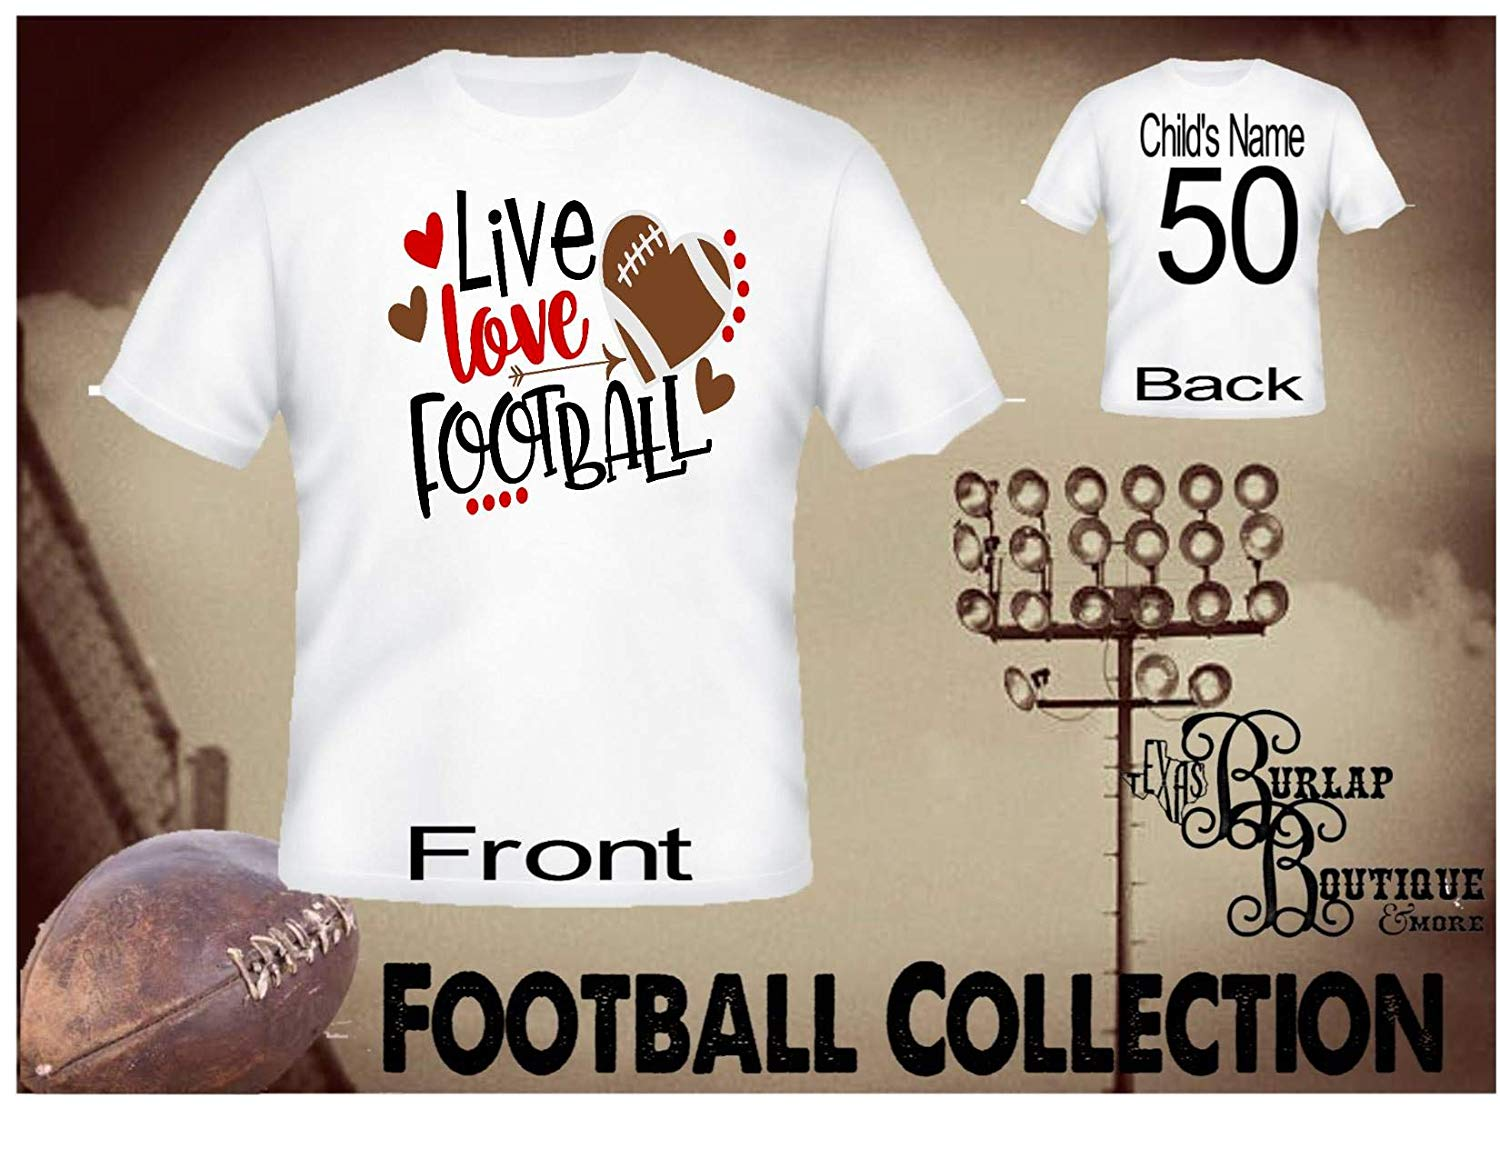 Handmade Personalized Football Shirt, Live, Love, Football, Tee, T - Shirt, Tshirt, Football Quotes, Kids, Girls, Adult, Sizes XS - 3XL Several colors